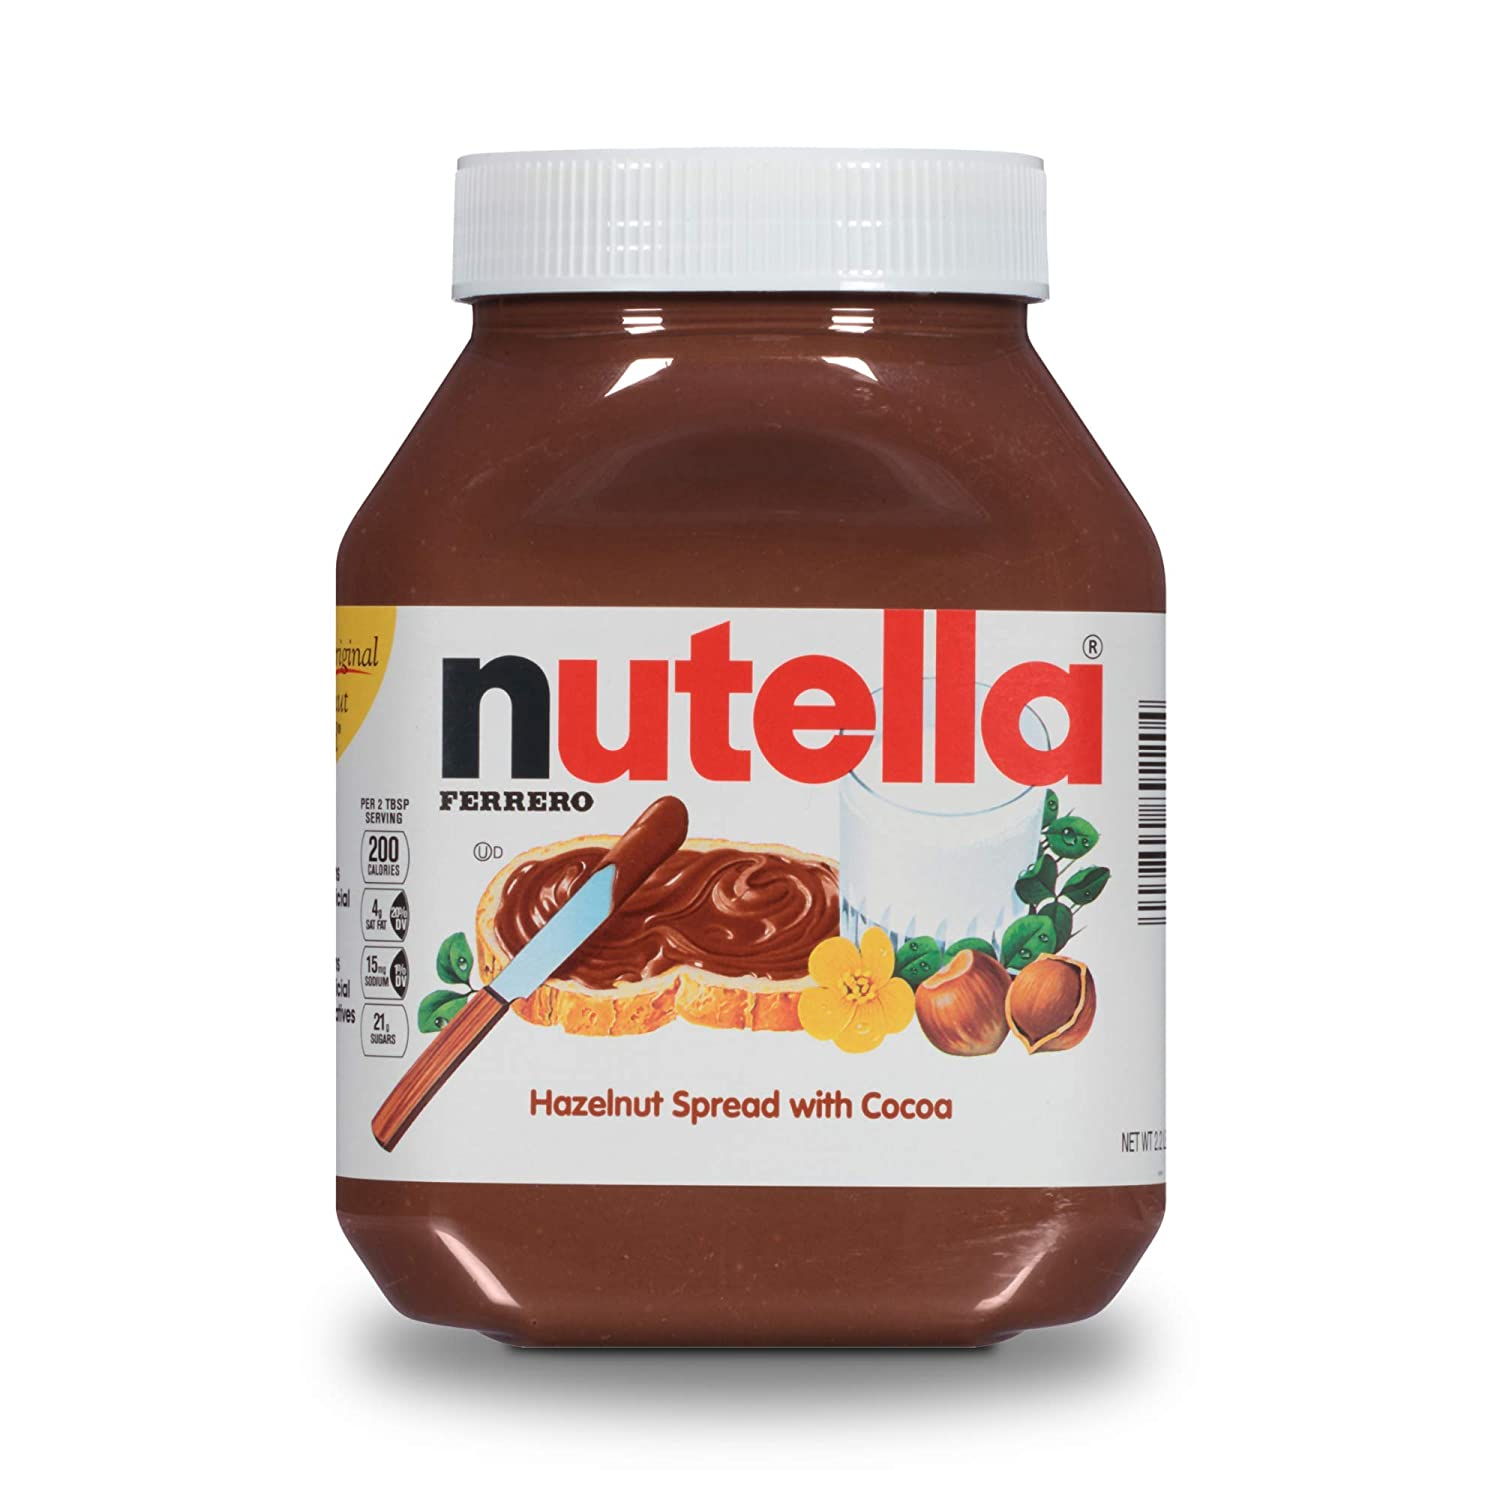 Nutella Chocolate Hazelnut Spread, Perfect Topping for Pancakes, 35.2 Oz Jar